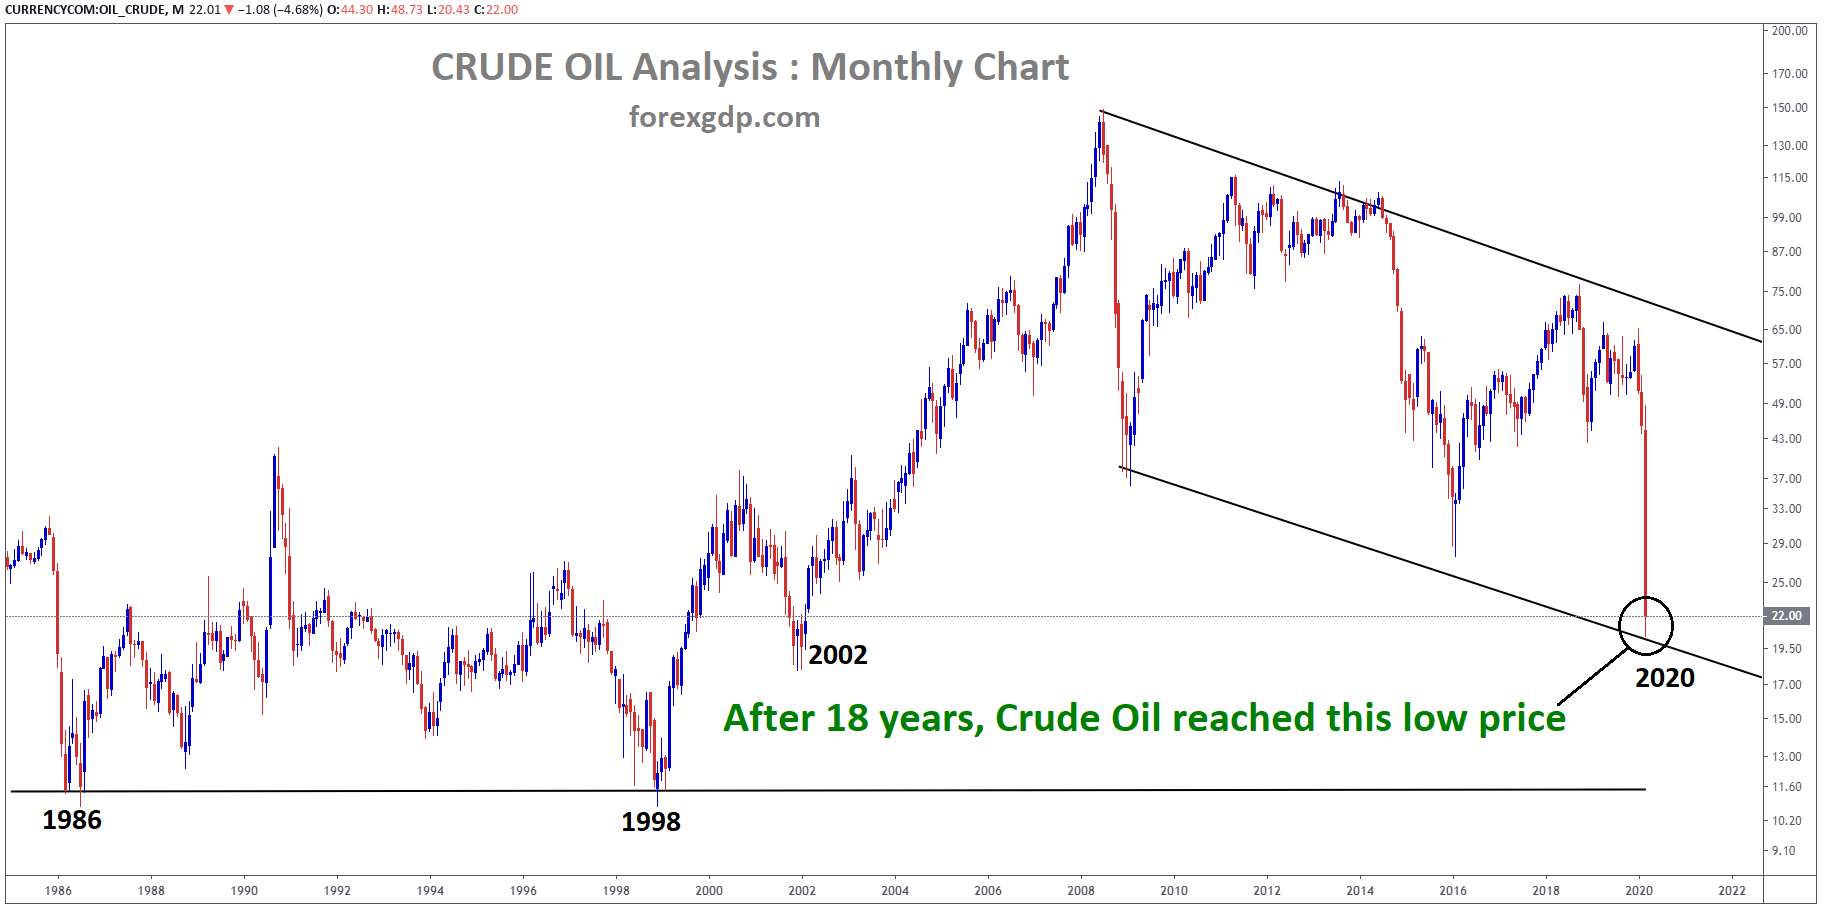 WTI USD crude oil price hits low after 18 years